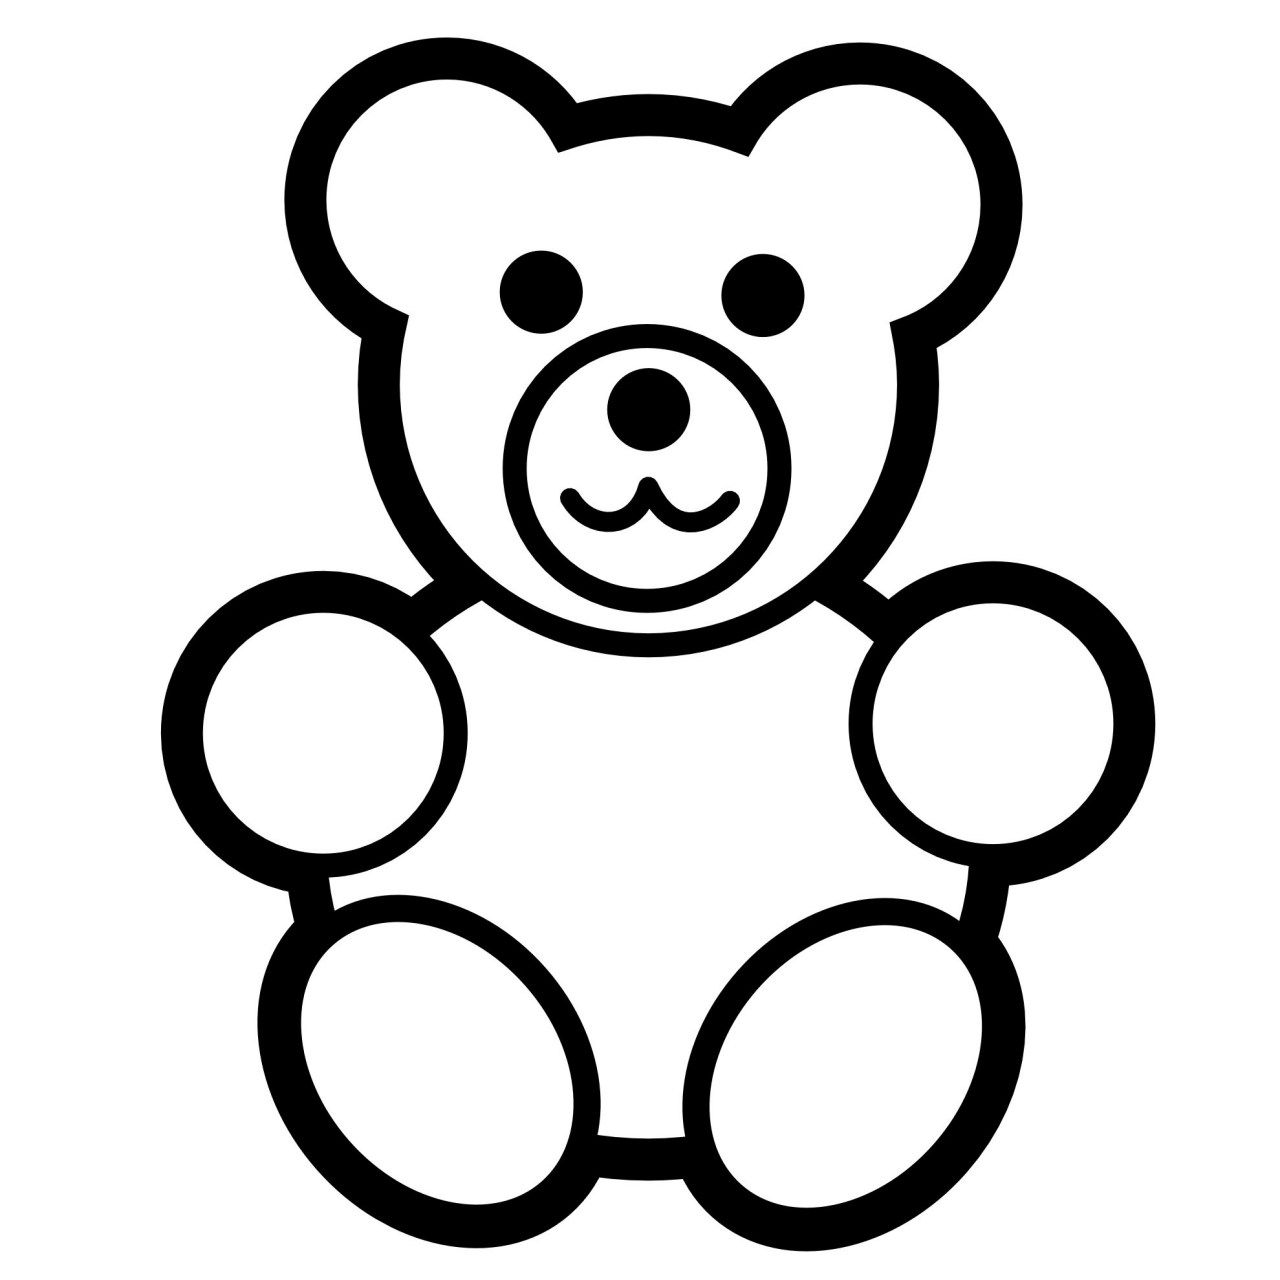 Bear Coloring Pages Free Printable Teddy Bear Coloring Pages For Kids Entitlementtrap Com Teddy Bear Coloring Pages Bear Coloring Pages Bear Stencil